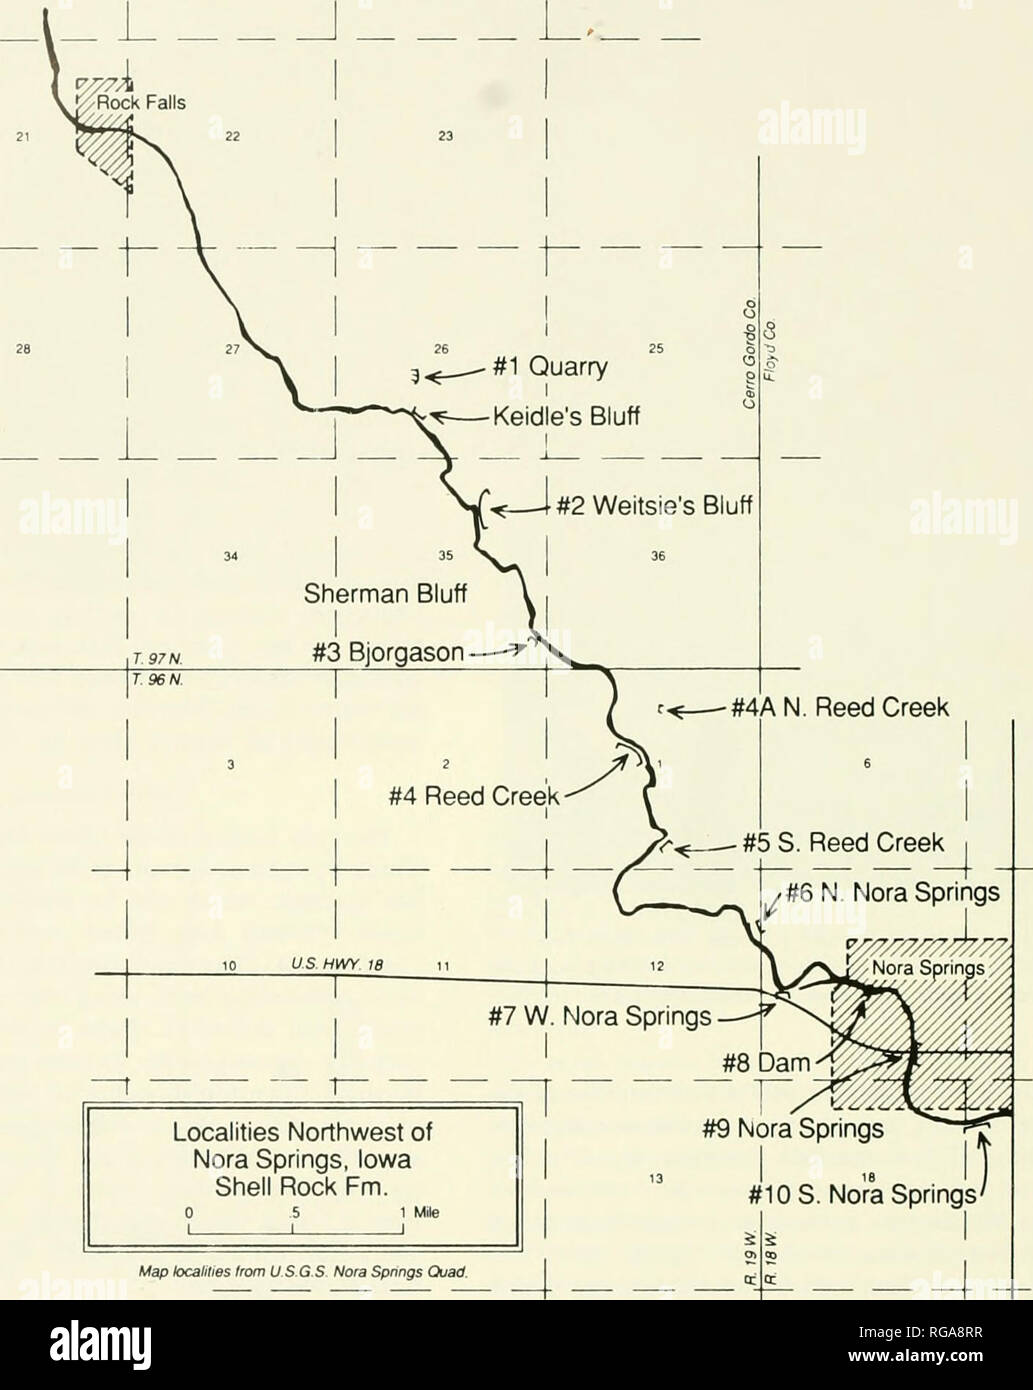 hight resolution of localities where the shell rock formation was studied along the shell rock river northwest of nora springs iowa